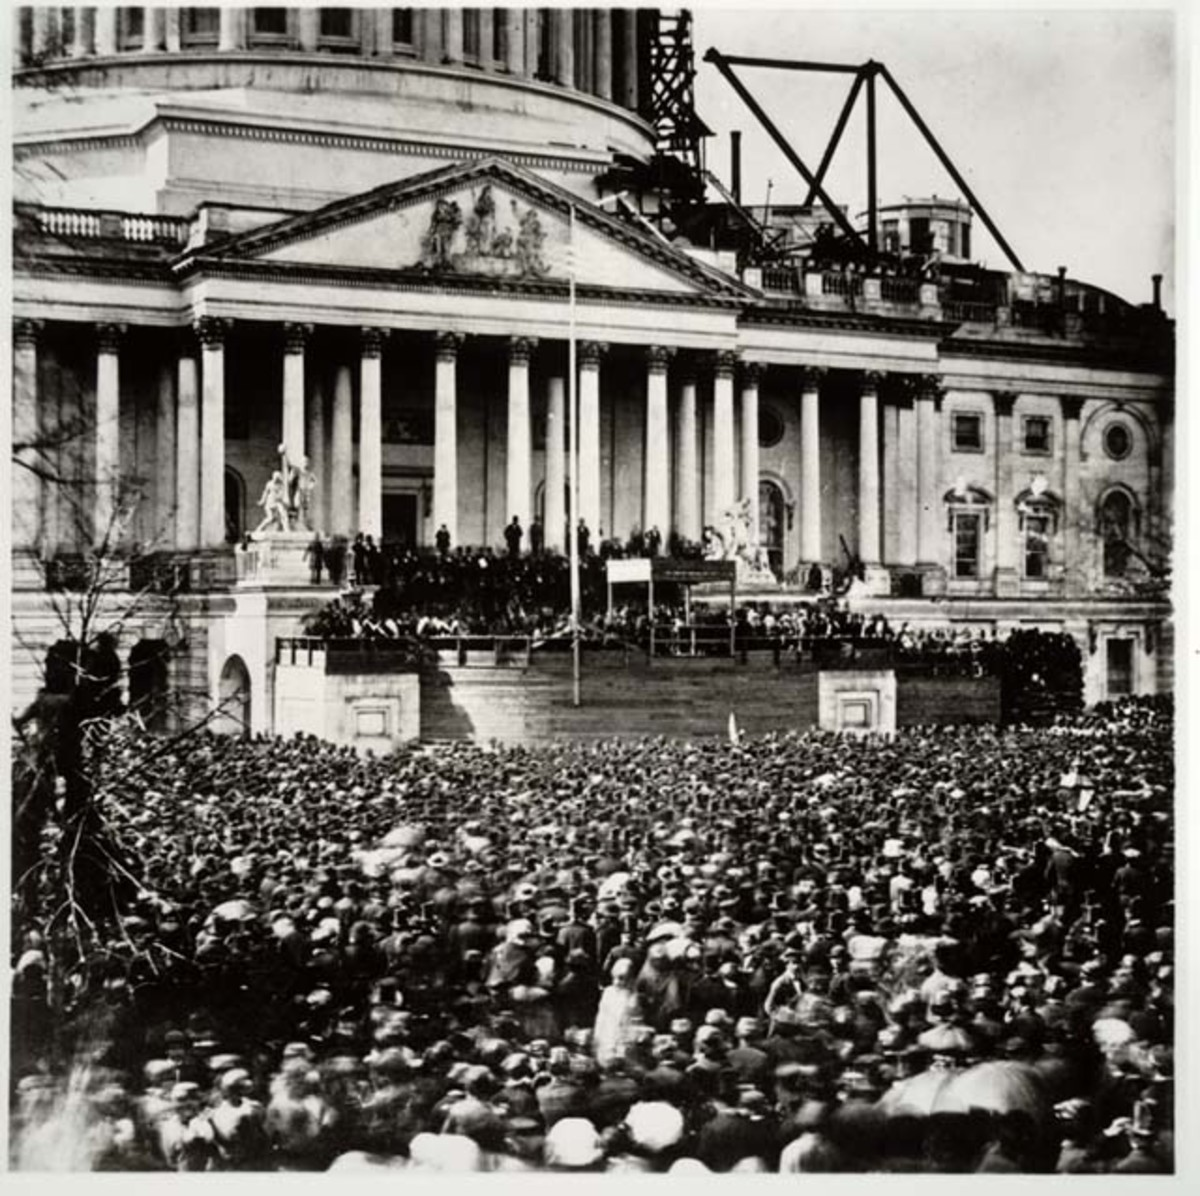 This photograph captures the crowd gathered before the east portico of the unfinished Capitol to glimpse the inaugural ceremonies.